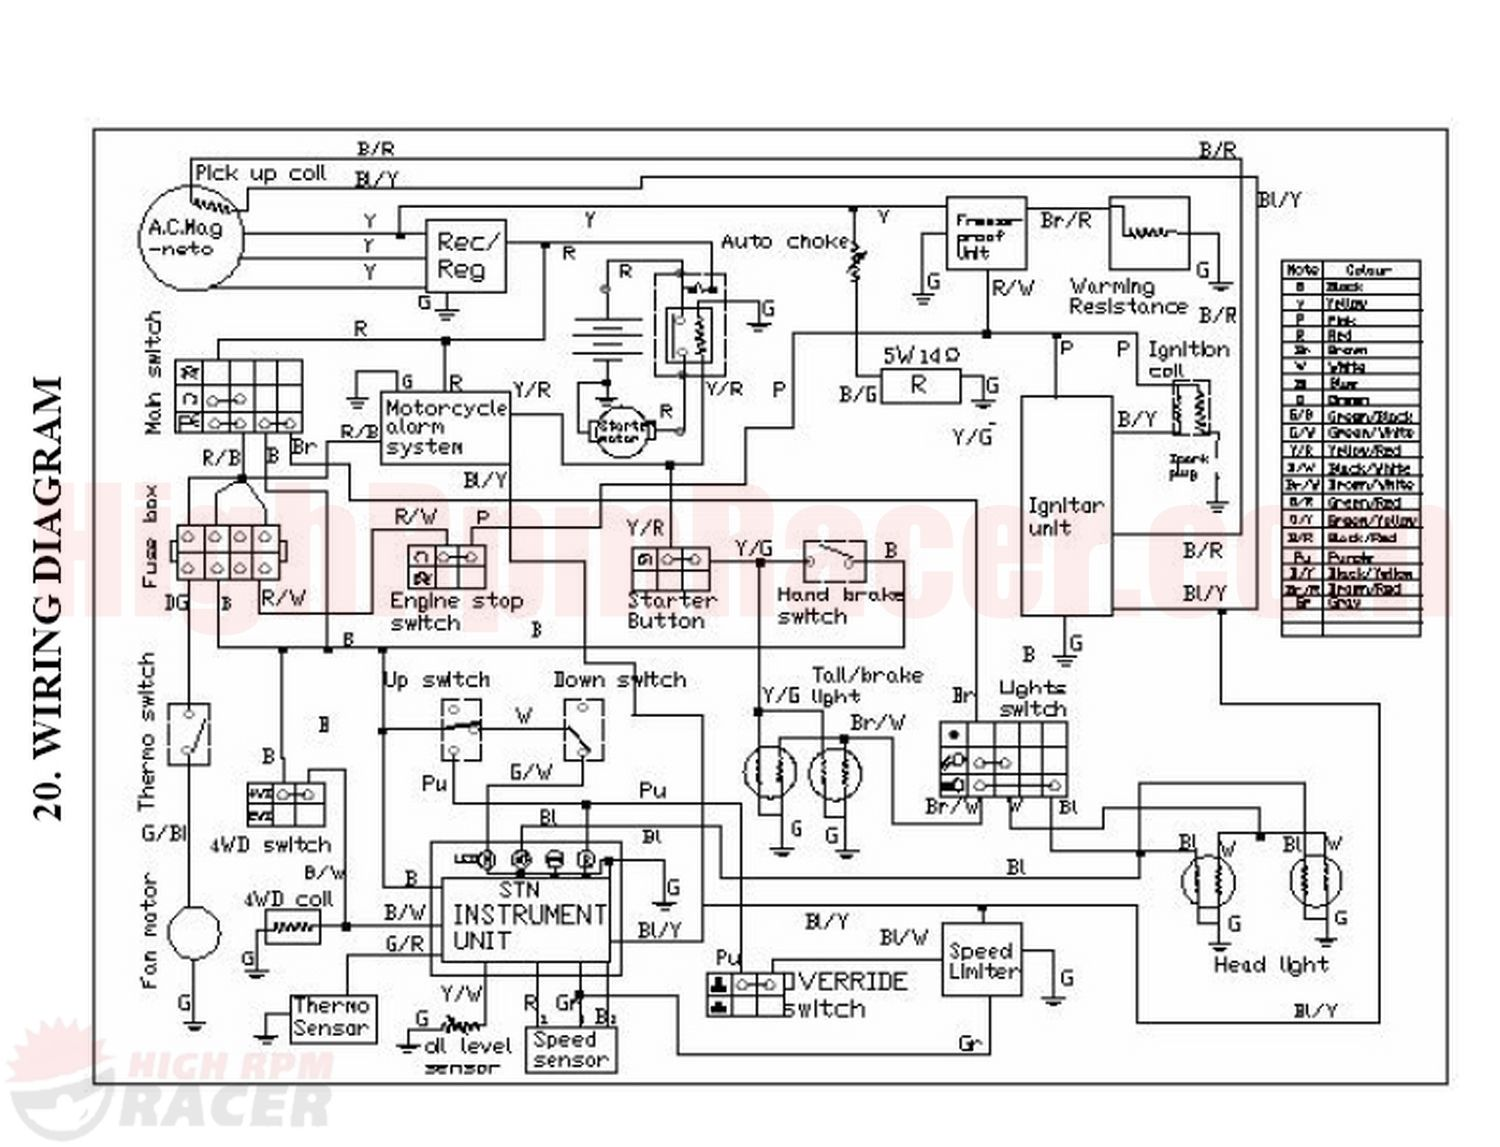 linhai 260 wiring diagram auto electrical wiring diagram u2022 rh 6weeks co uk linhai 260 atv wiring diagram